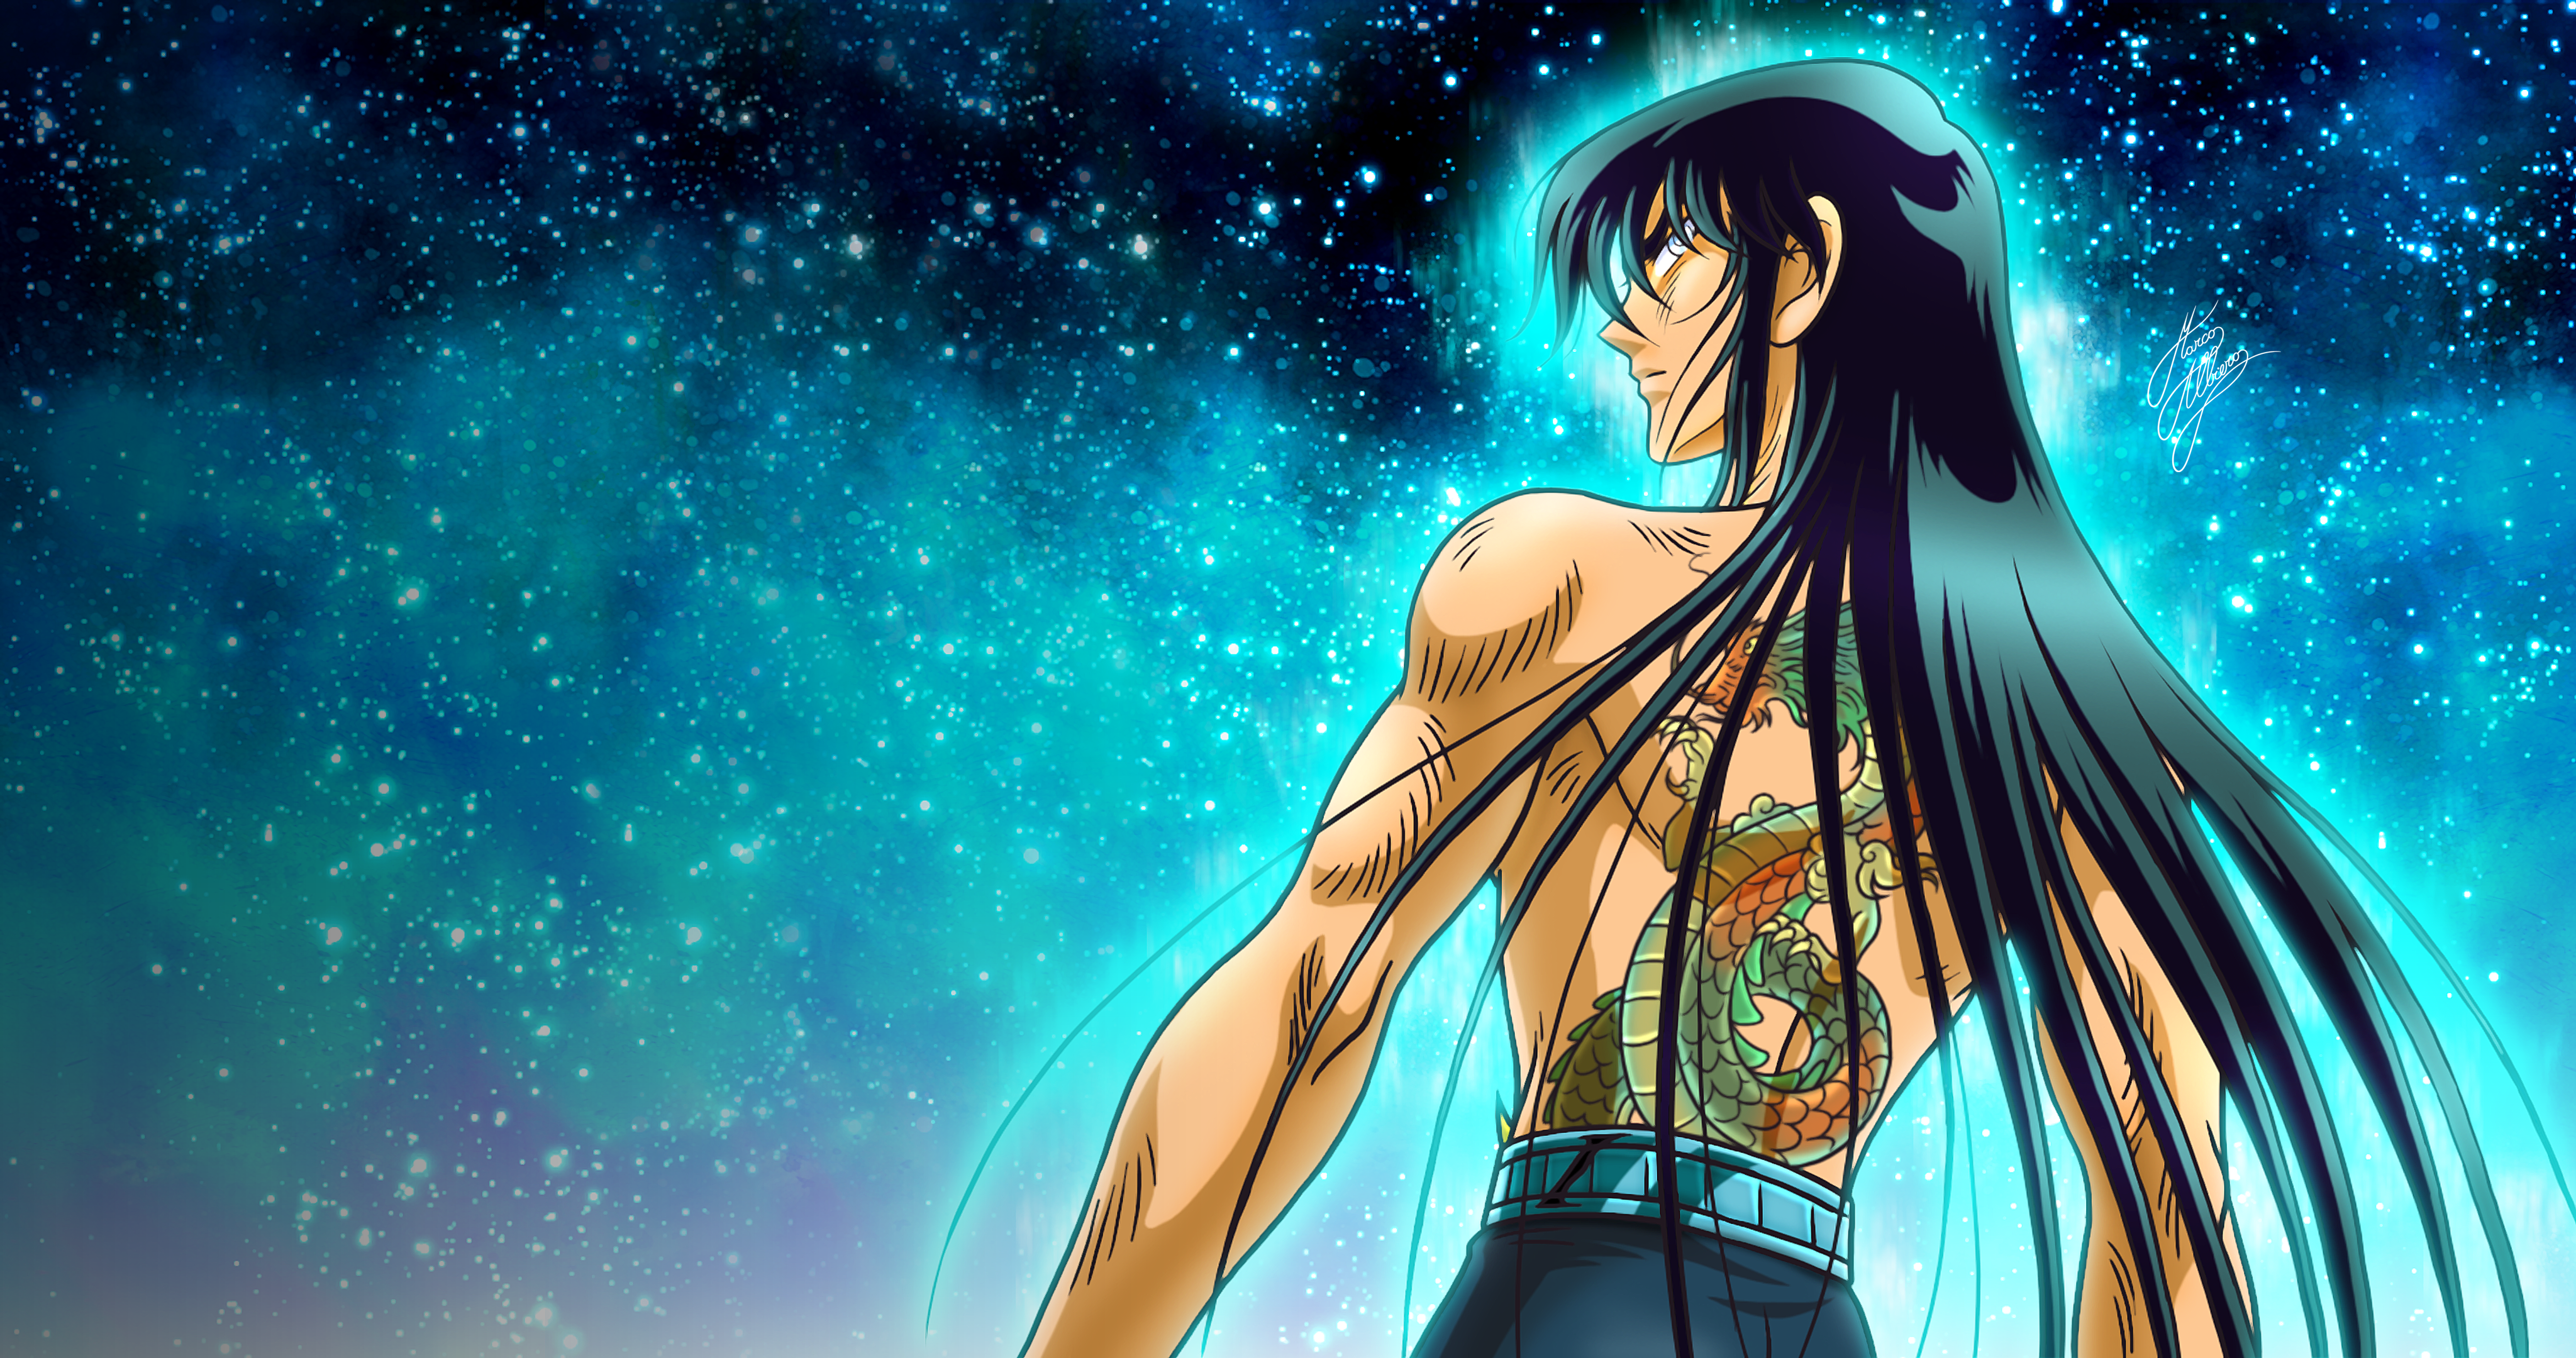 Saint Seiya Gigantomachia Dragon Shiryu 4k Ultra Papel De